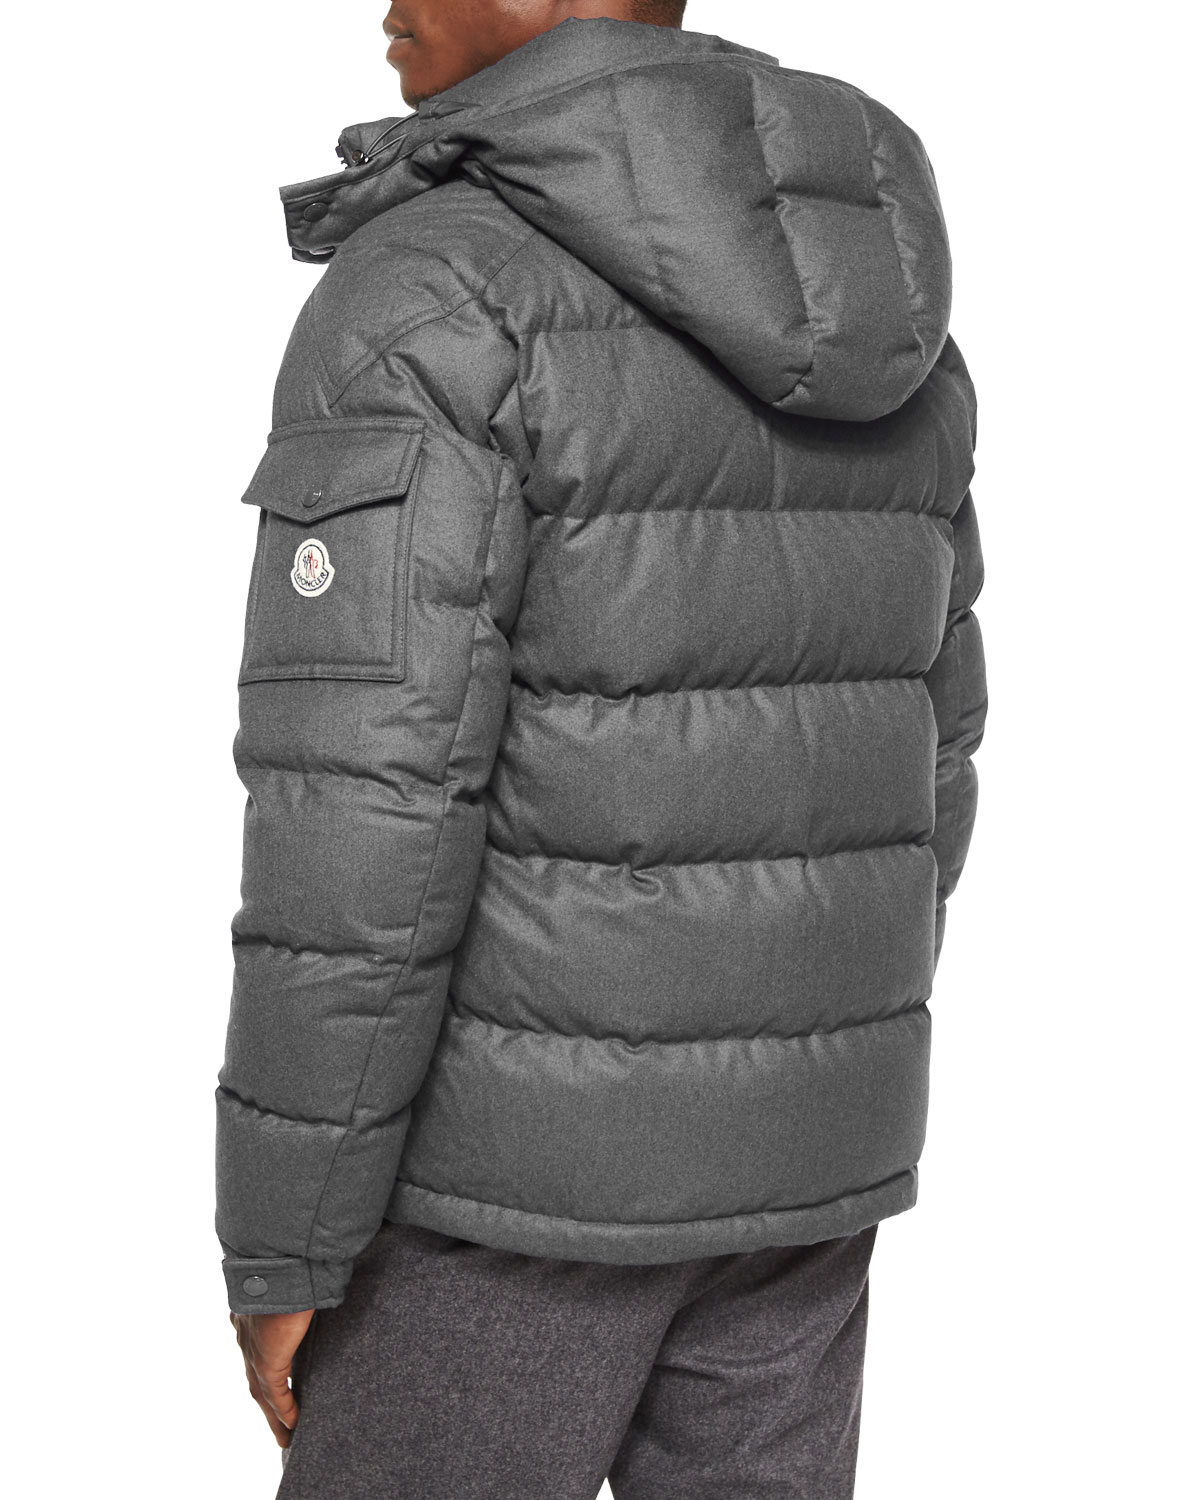 a202d080a Montgenevre Quilted Down Jacket, Gray